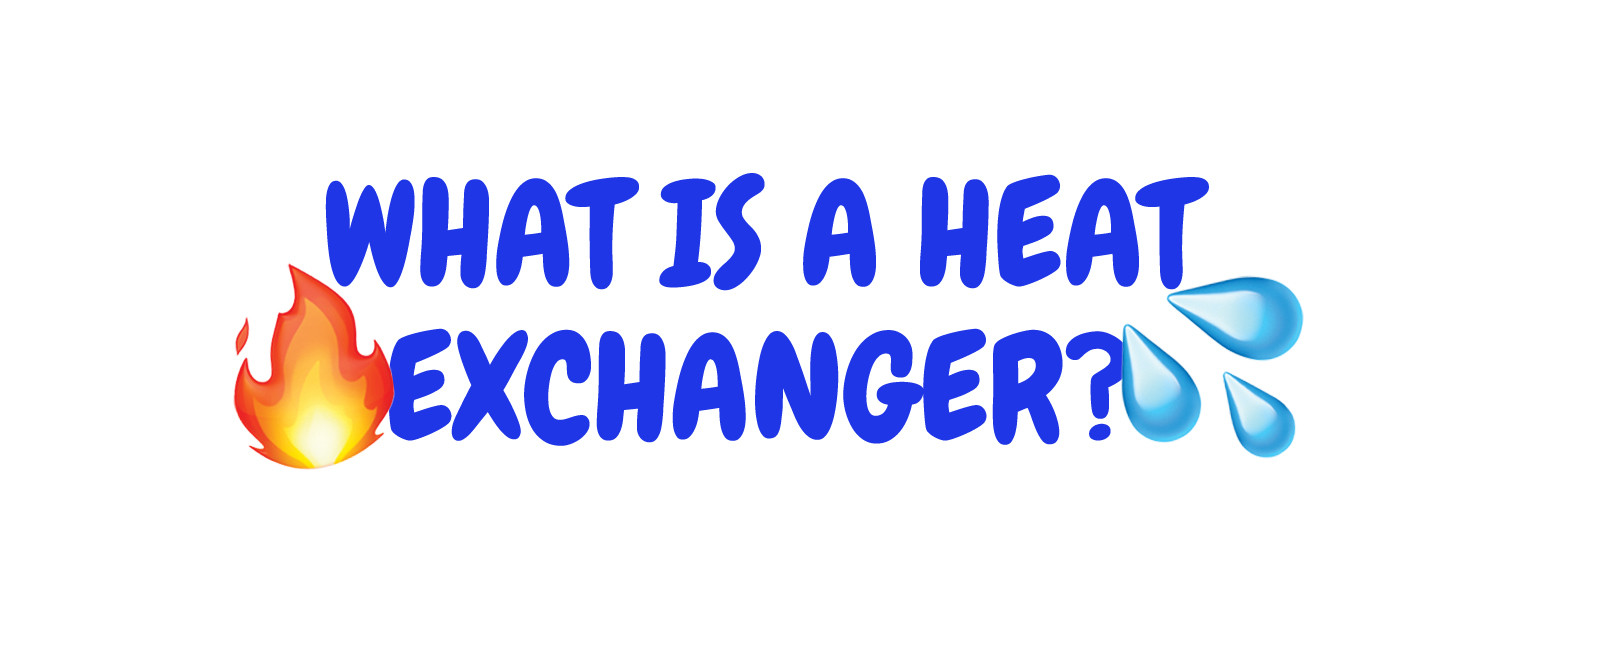 What is a boiler heat exchanger?